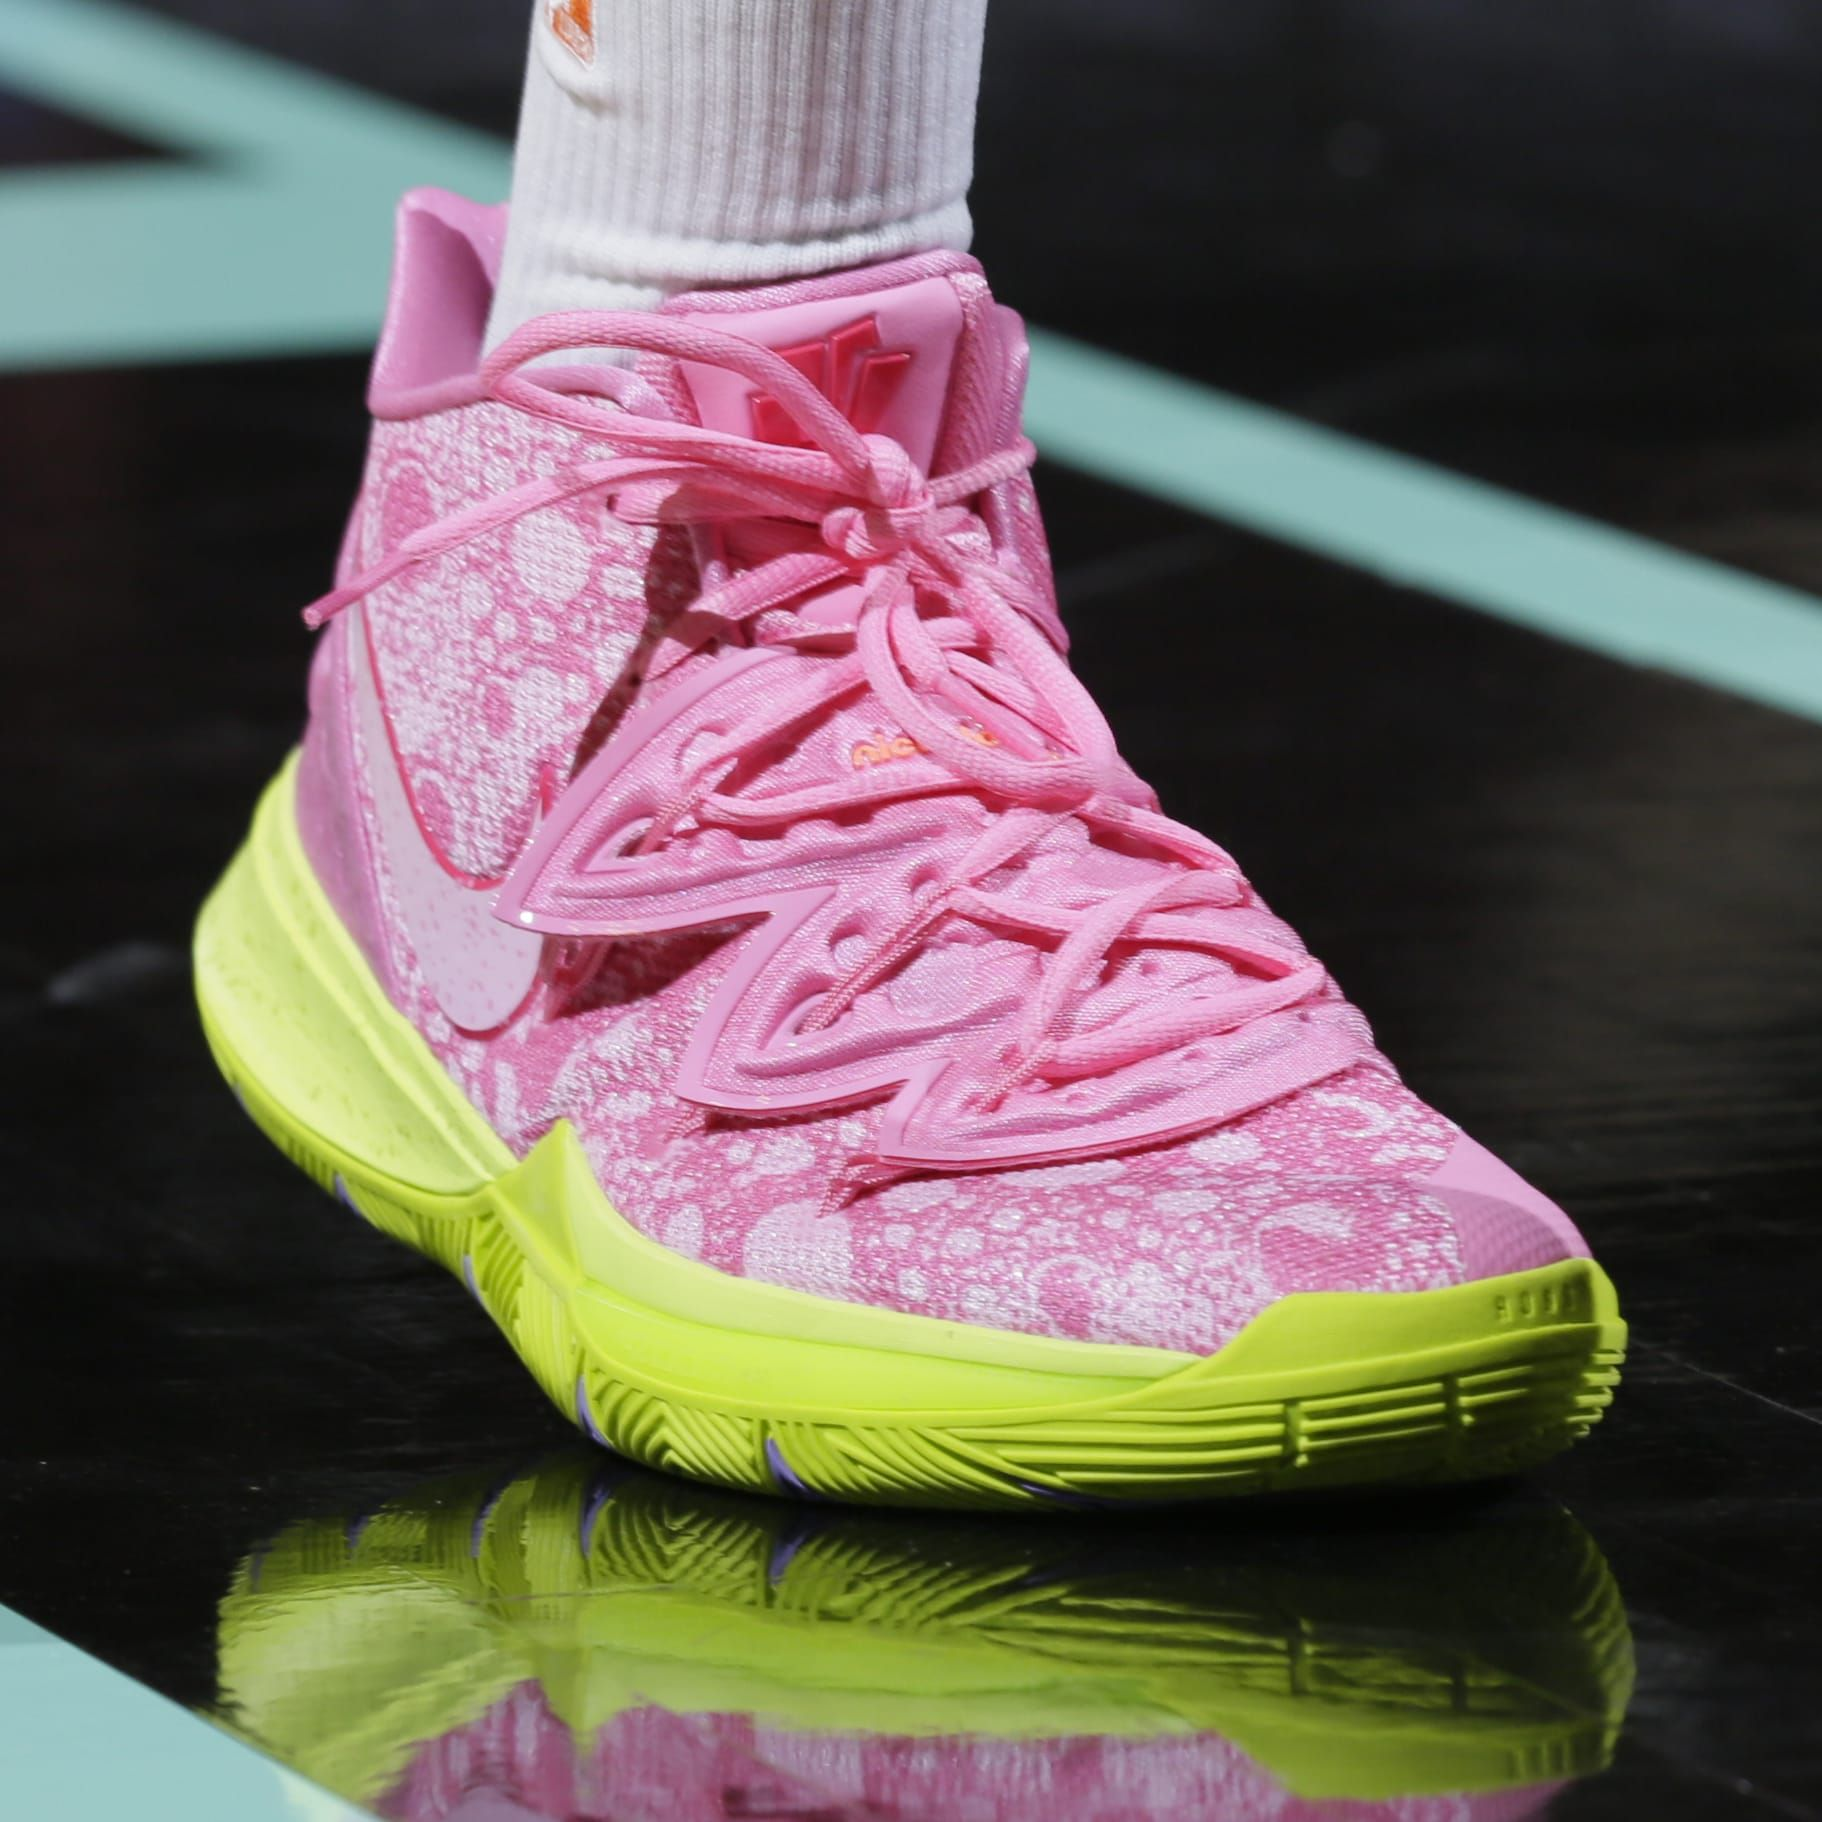 brand new 9bf94 e677d Kyrie Irving Teams Up with SpongeBob SquarePants for Sneaker ...